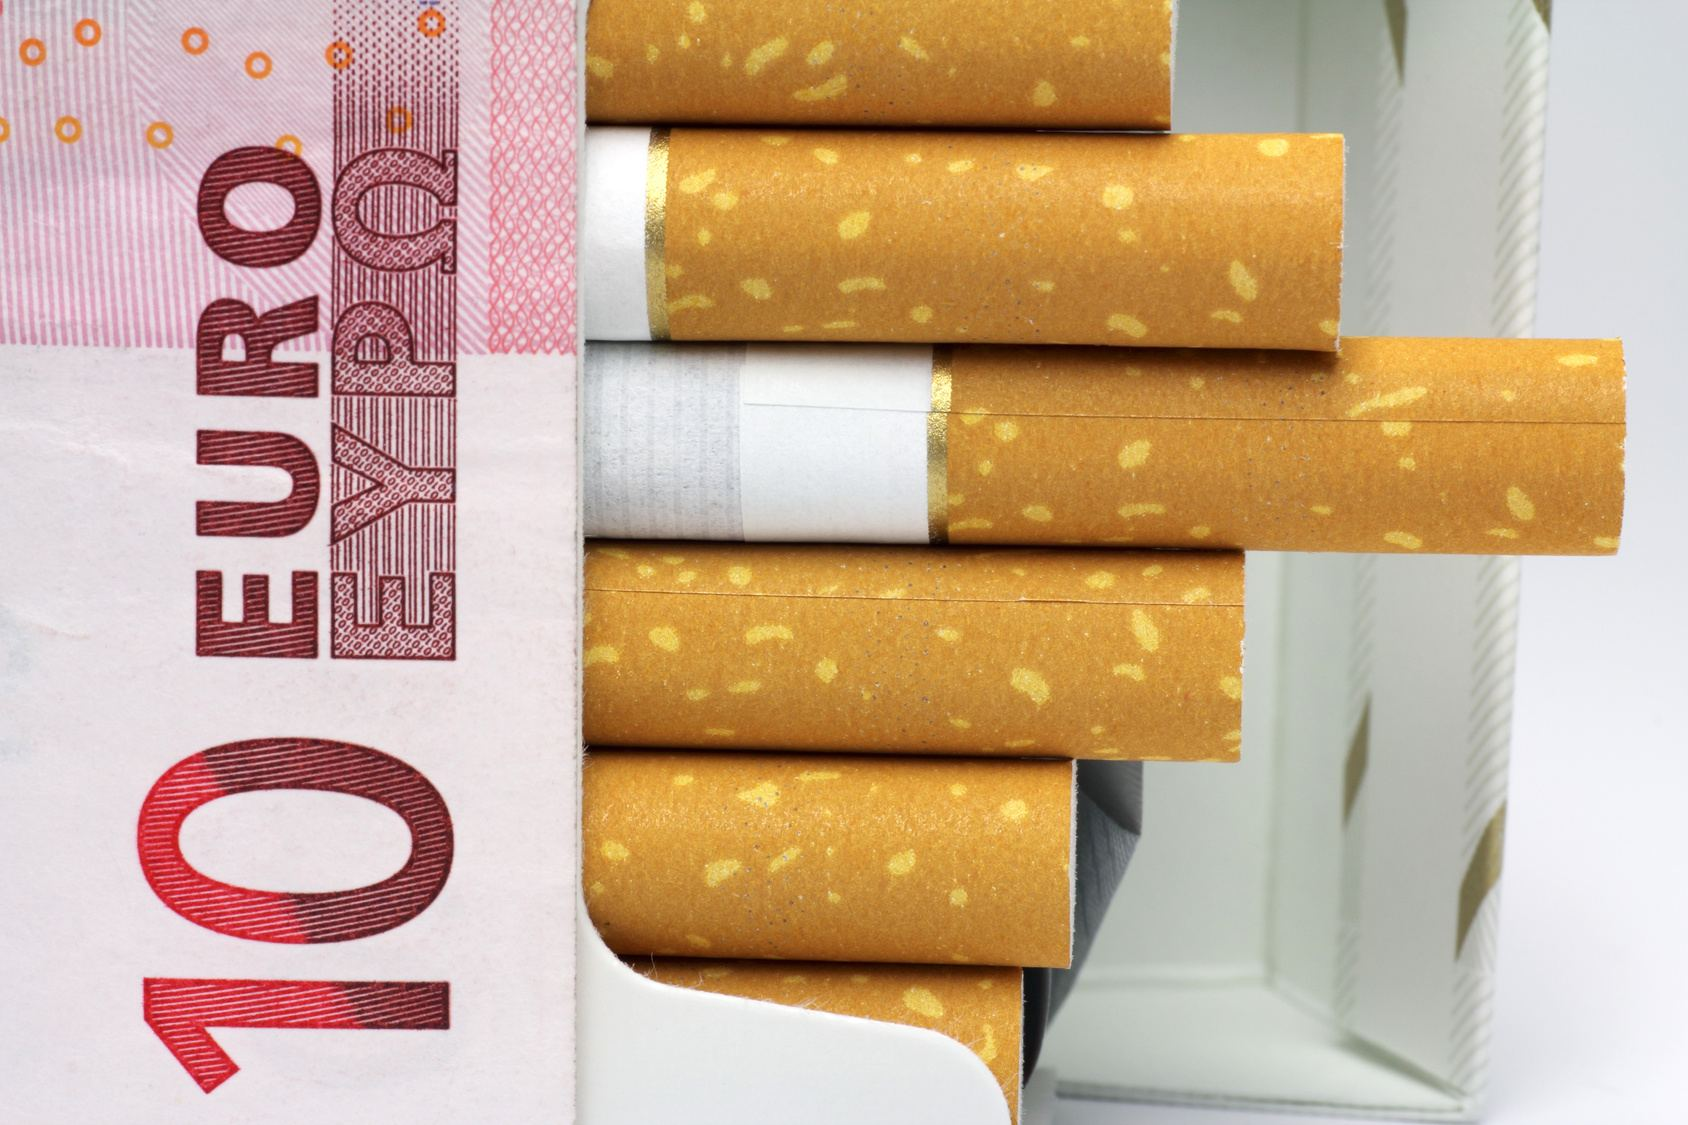 paquet-tabac-10euros-hausse-taxes-cigarettes